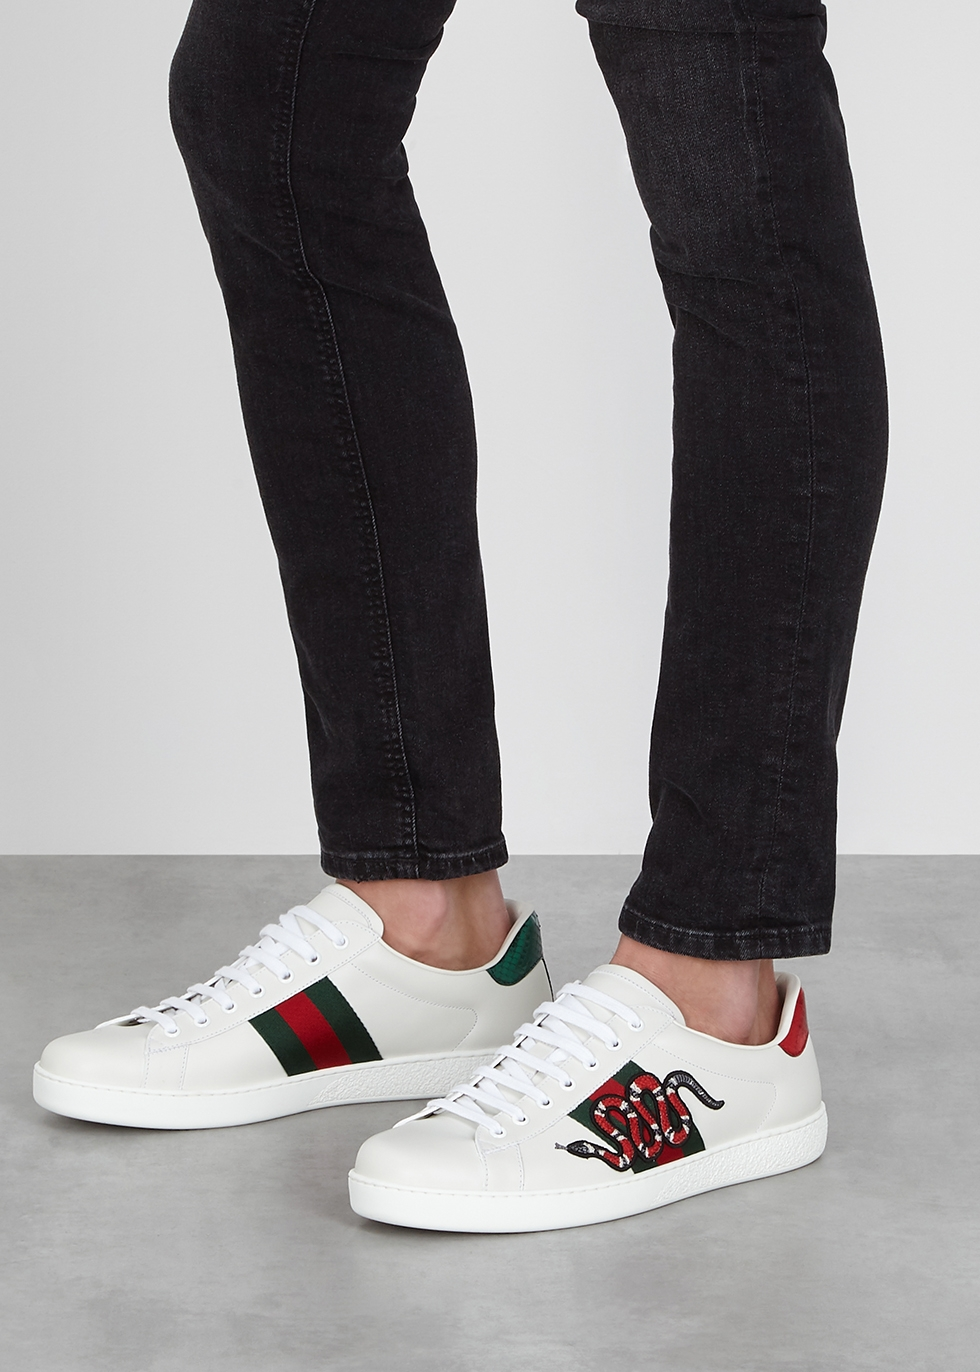 Gucci Ace snake-embroidered leather